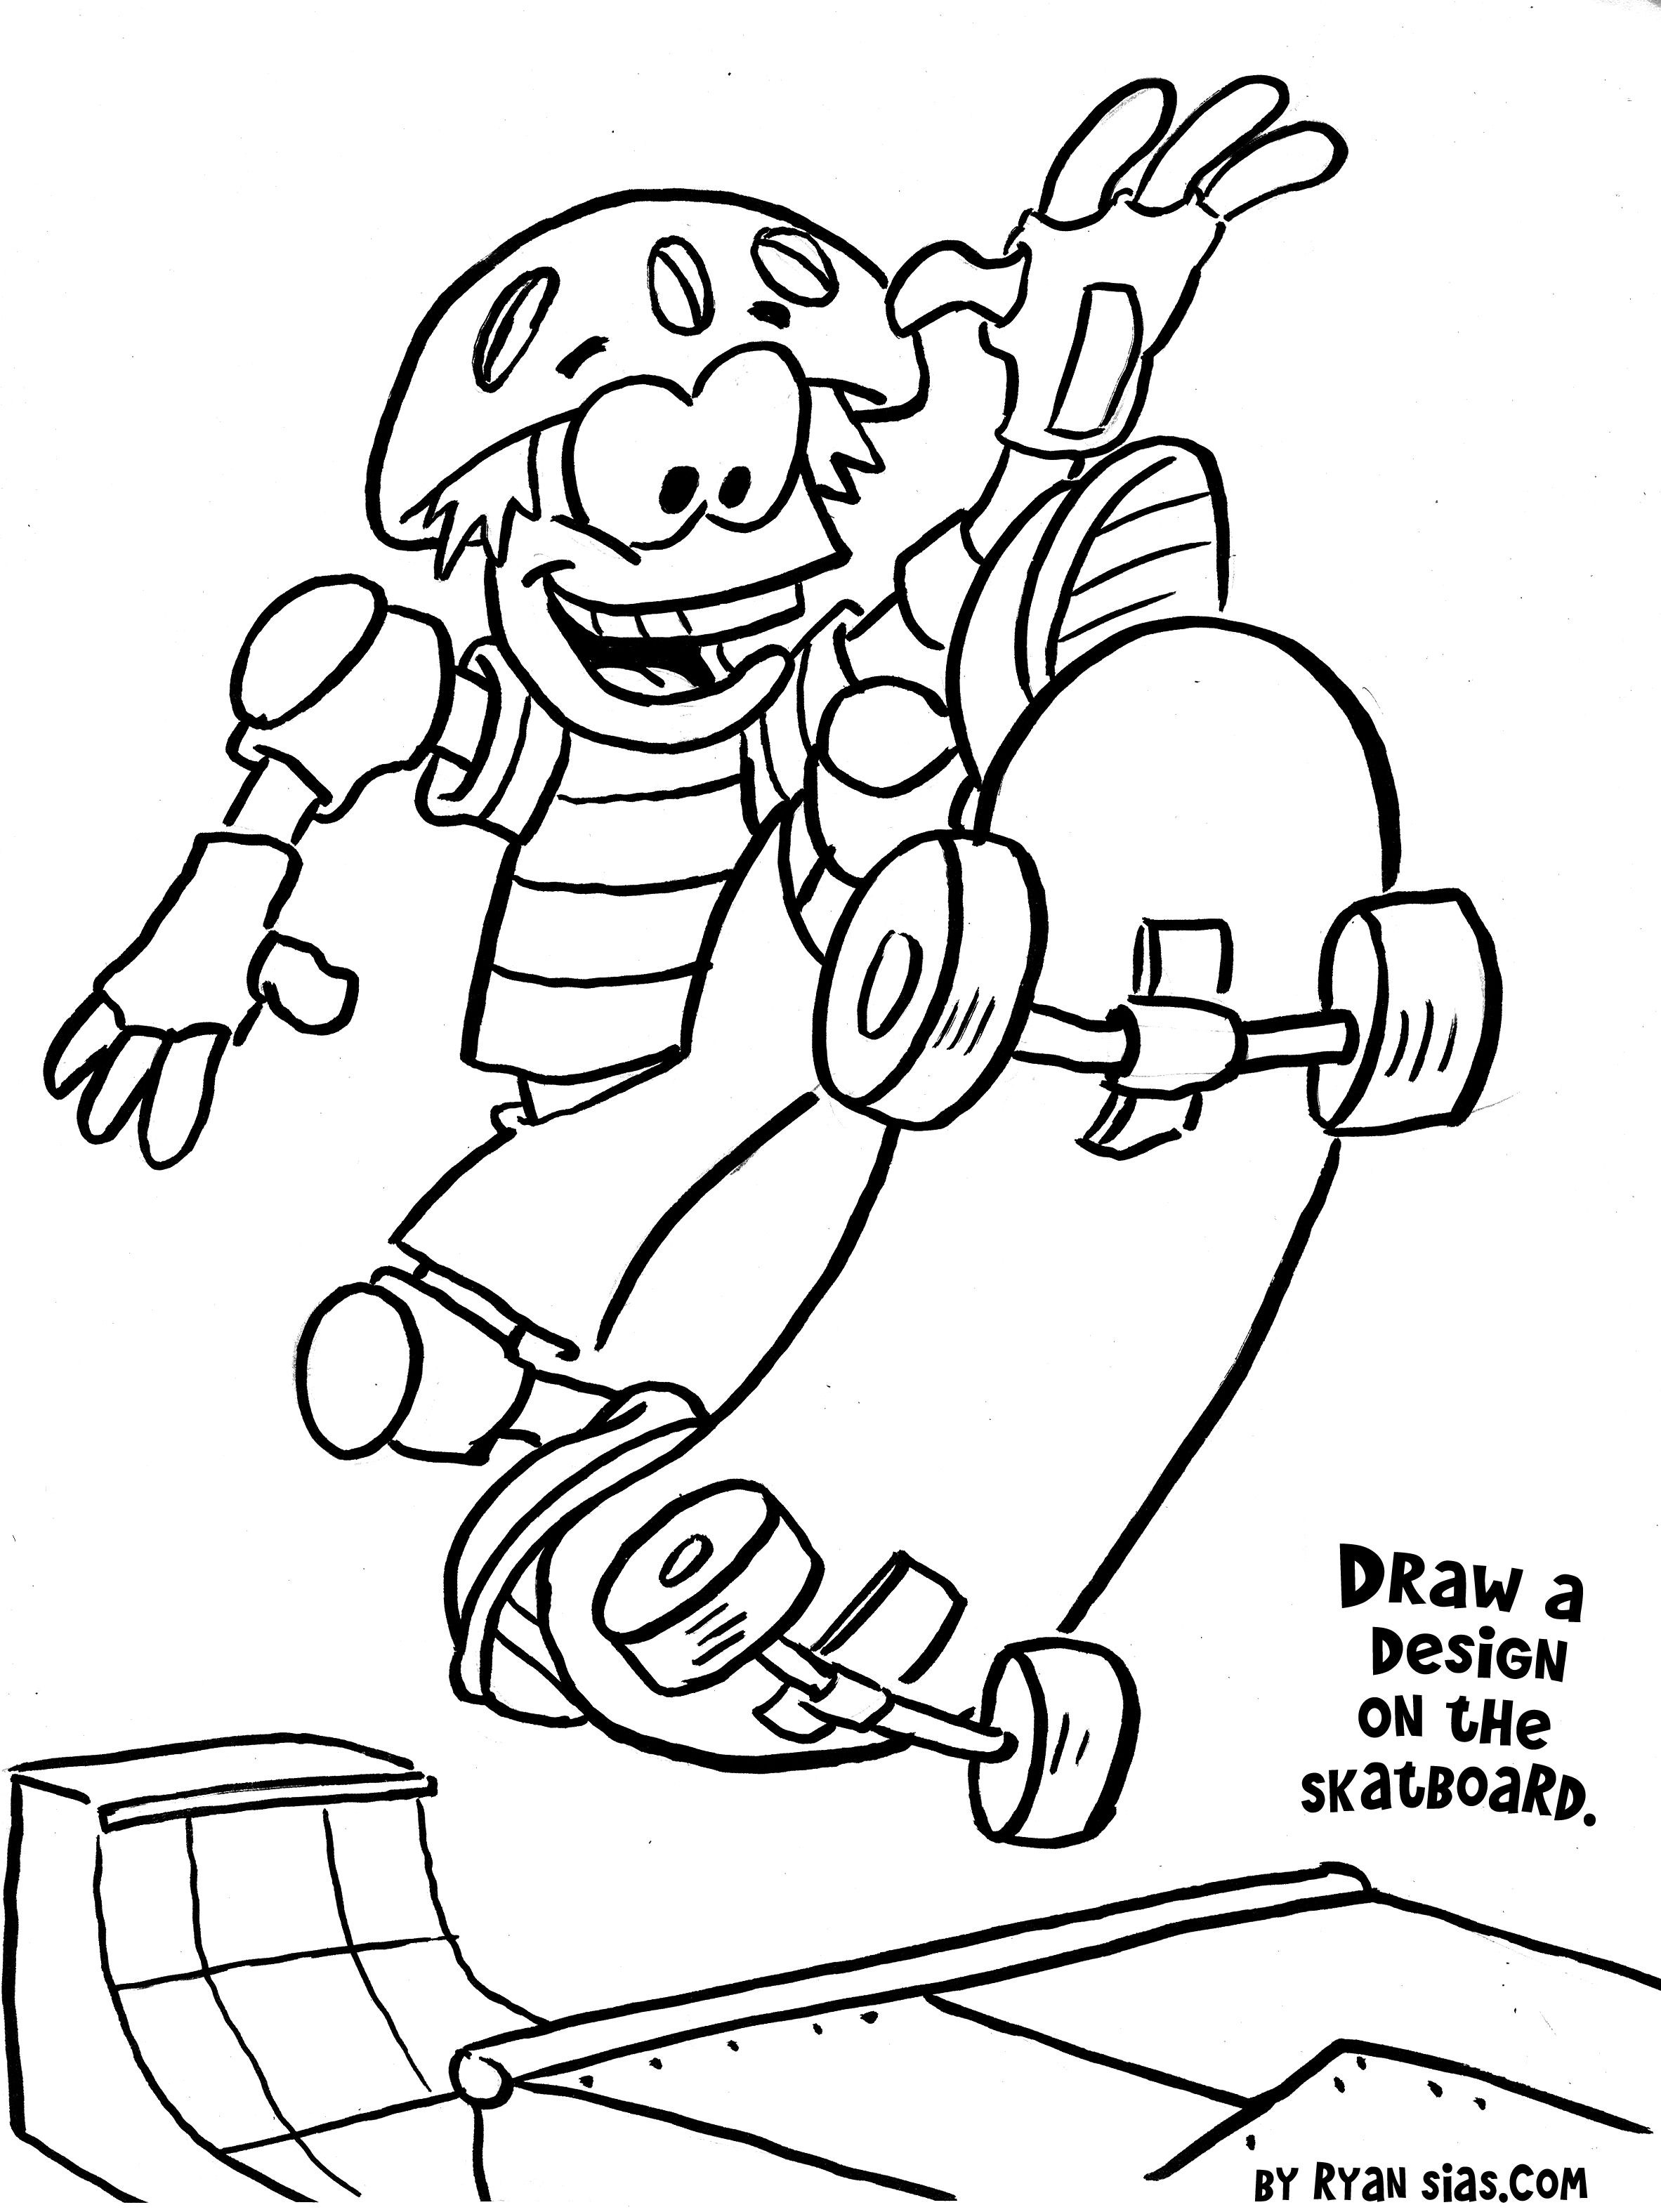 Free Printable Sports Coloring Pages Skateboard Gianfredanet